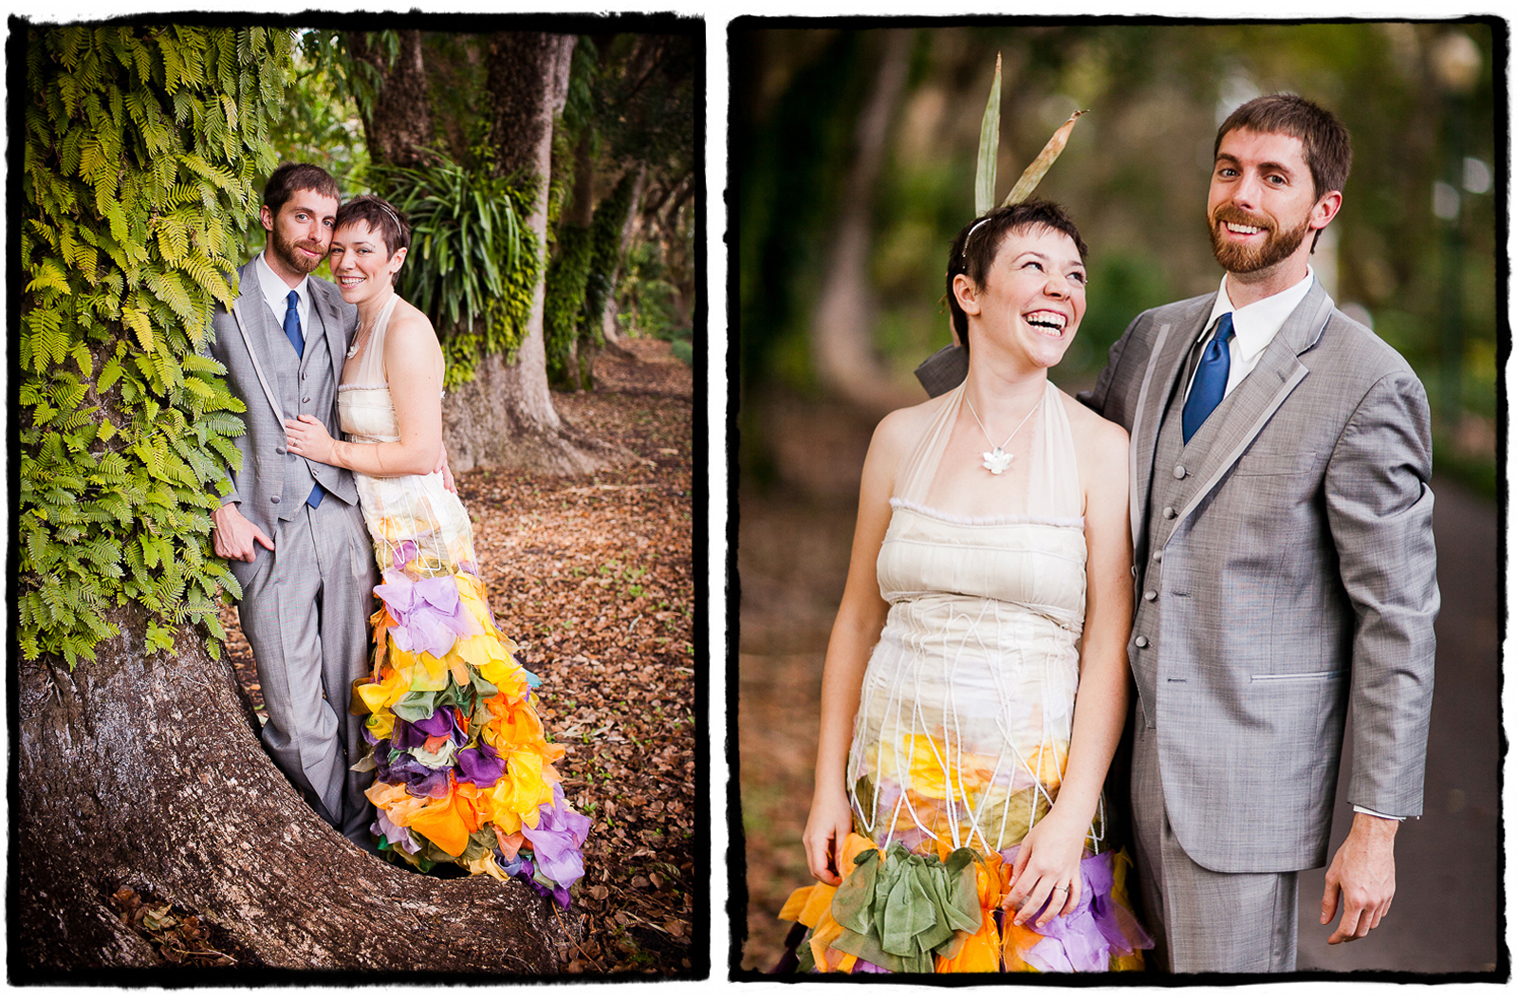 This couple fell in love at Burning Man and brought their creative spirit to the forefront of their amazing wedding in Florida.  I loved this multi-colored custom wedding gown Christine had made by an independant designer..